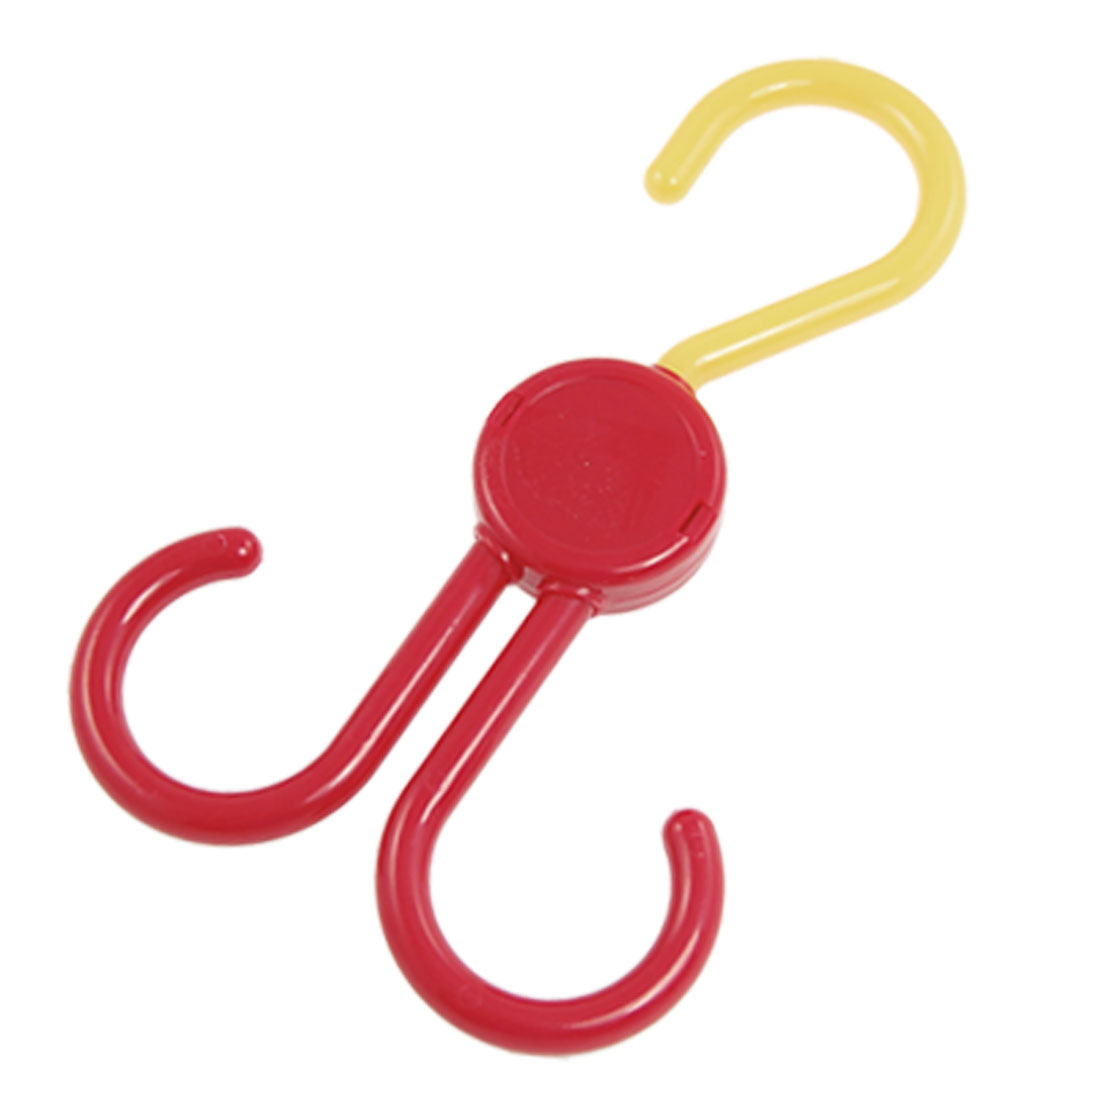 2 In 1 Plastic Foldable Hook Shopping Bag Hanger Yellow Red